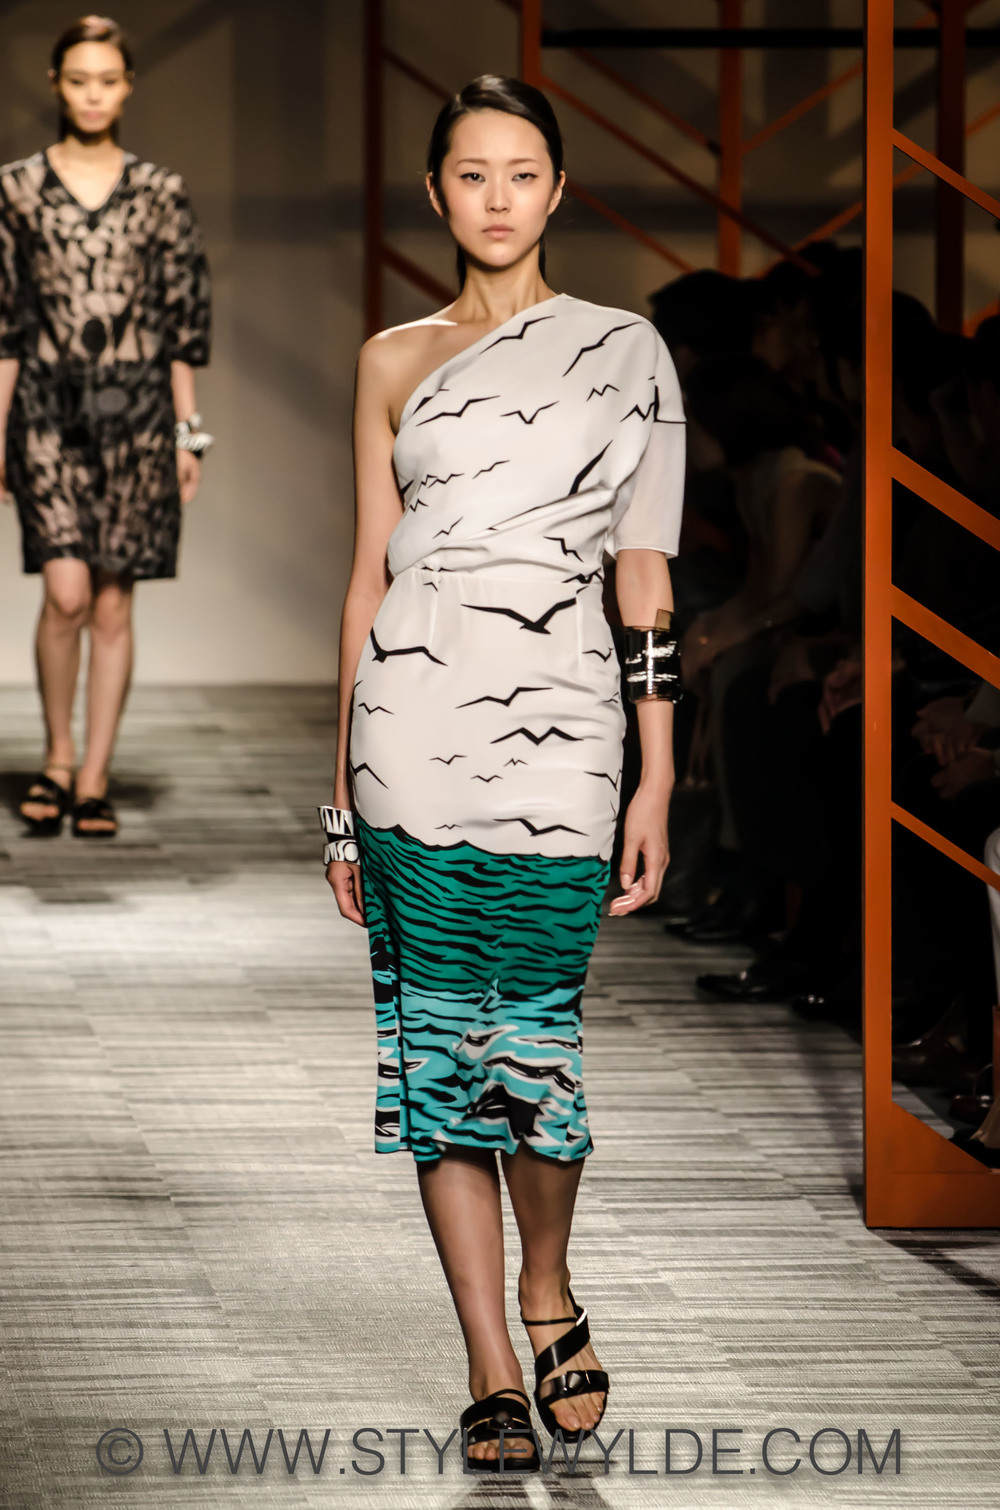 STYLEWYLDE_Missoni_SS2014 (1 of 1)-4.jpg